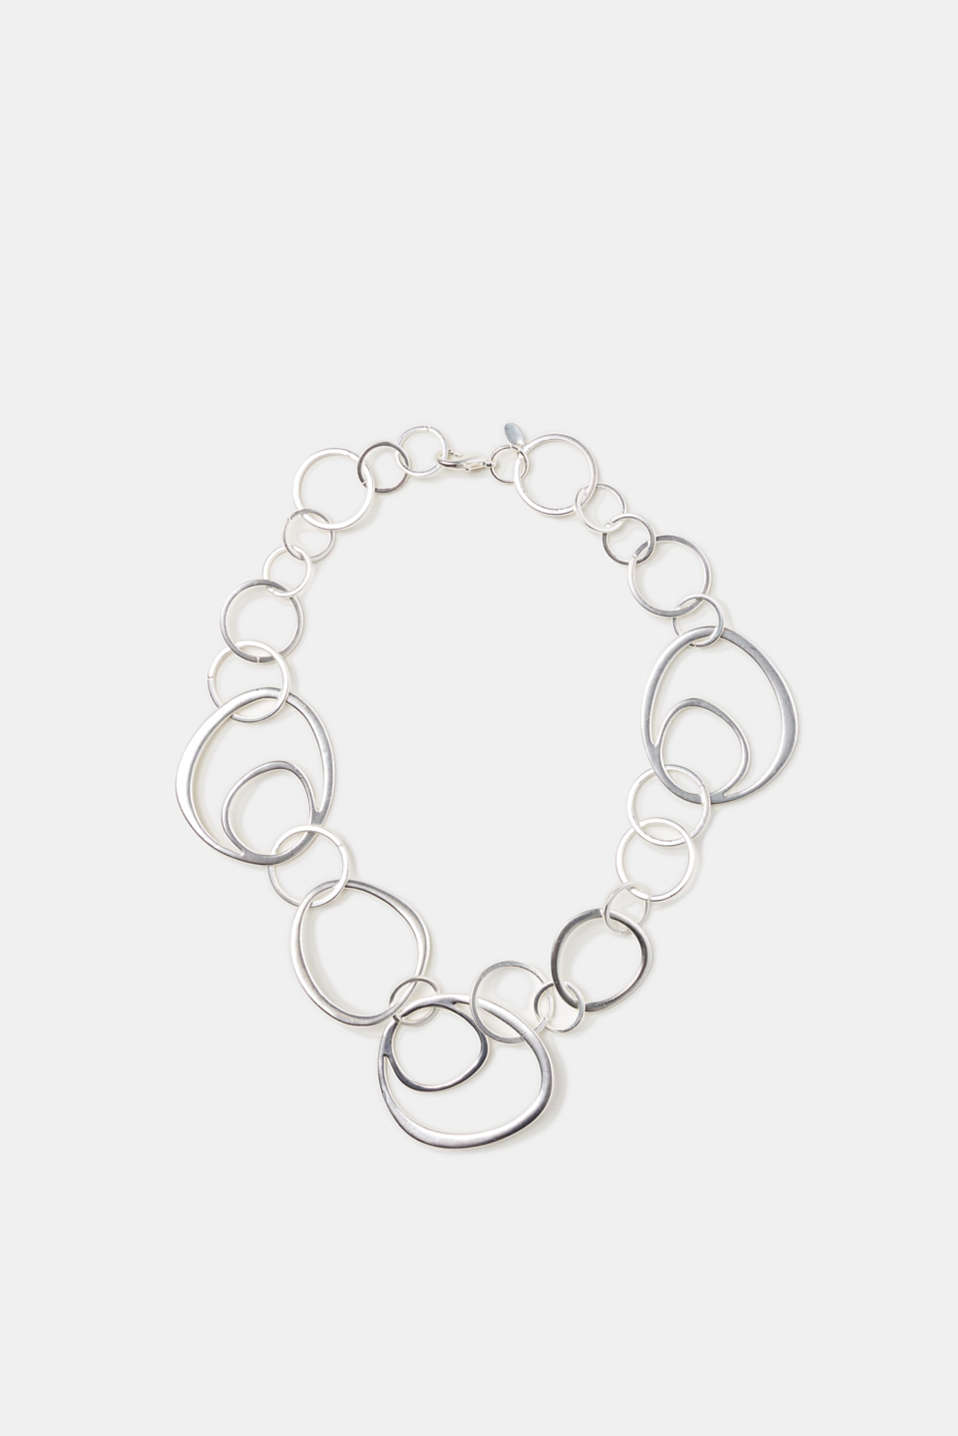 Esprit - Short necklace with matte rings